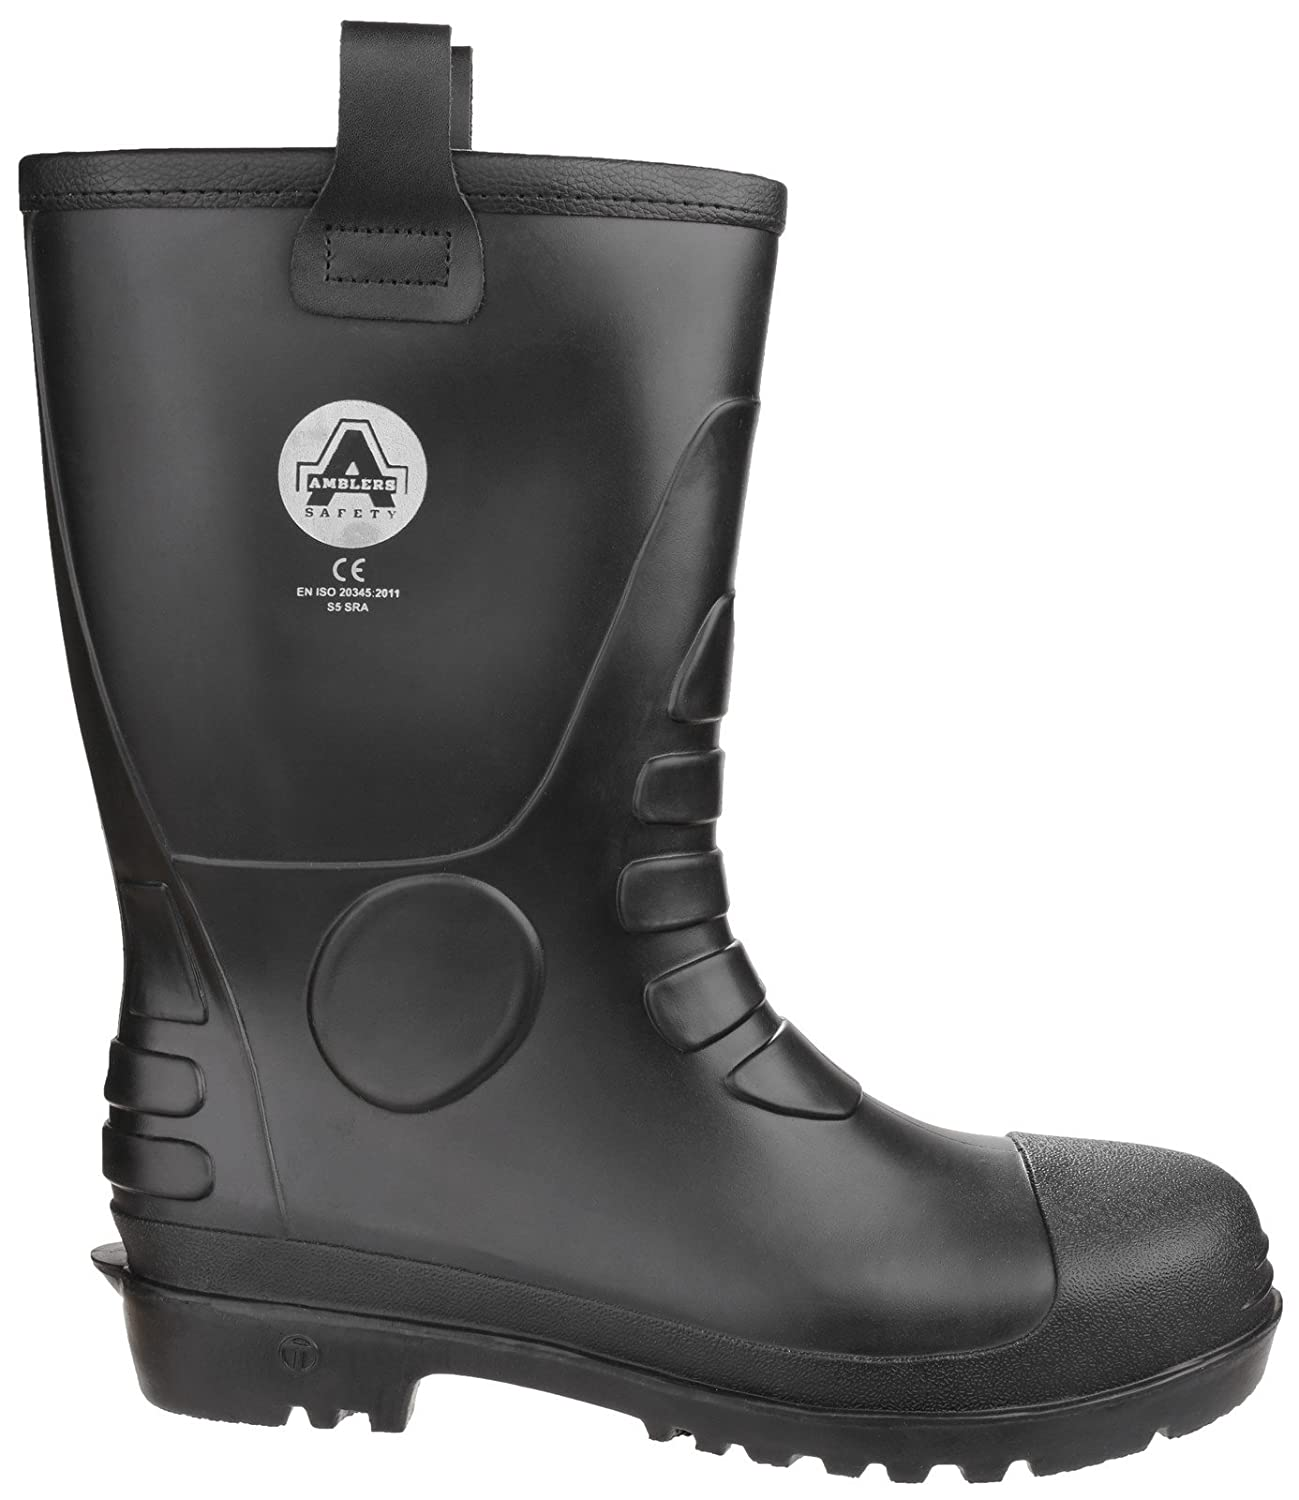 01aa10e41a6 Amblers FS90 Waterproof PVC Pull on Safety Rigger Boot - 24926